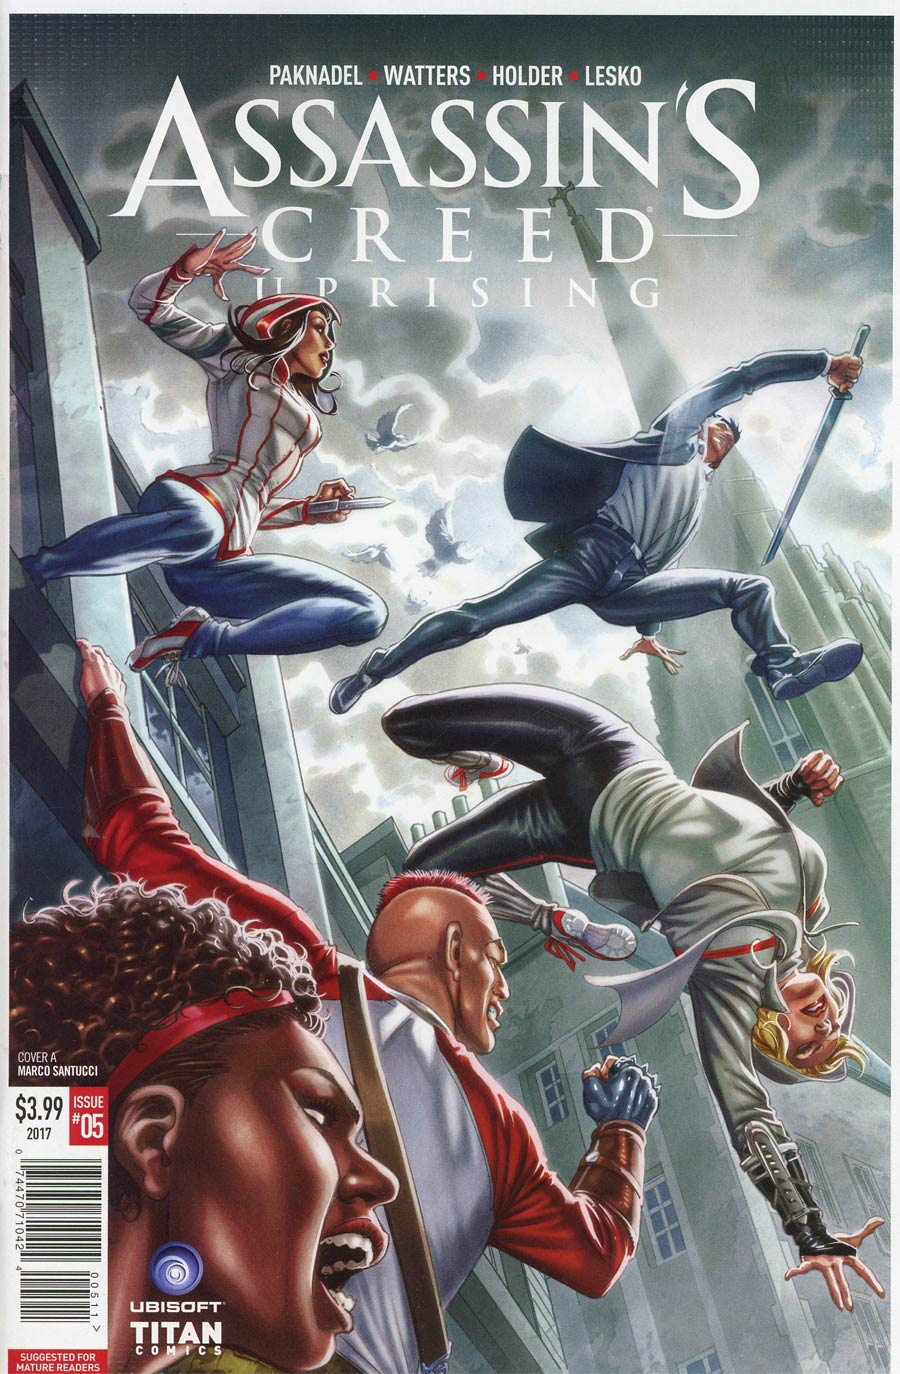 Assassins Creed Uprising #5 Cover A Regular Marco Santucci Cover